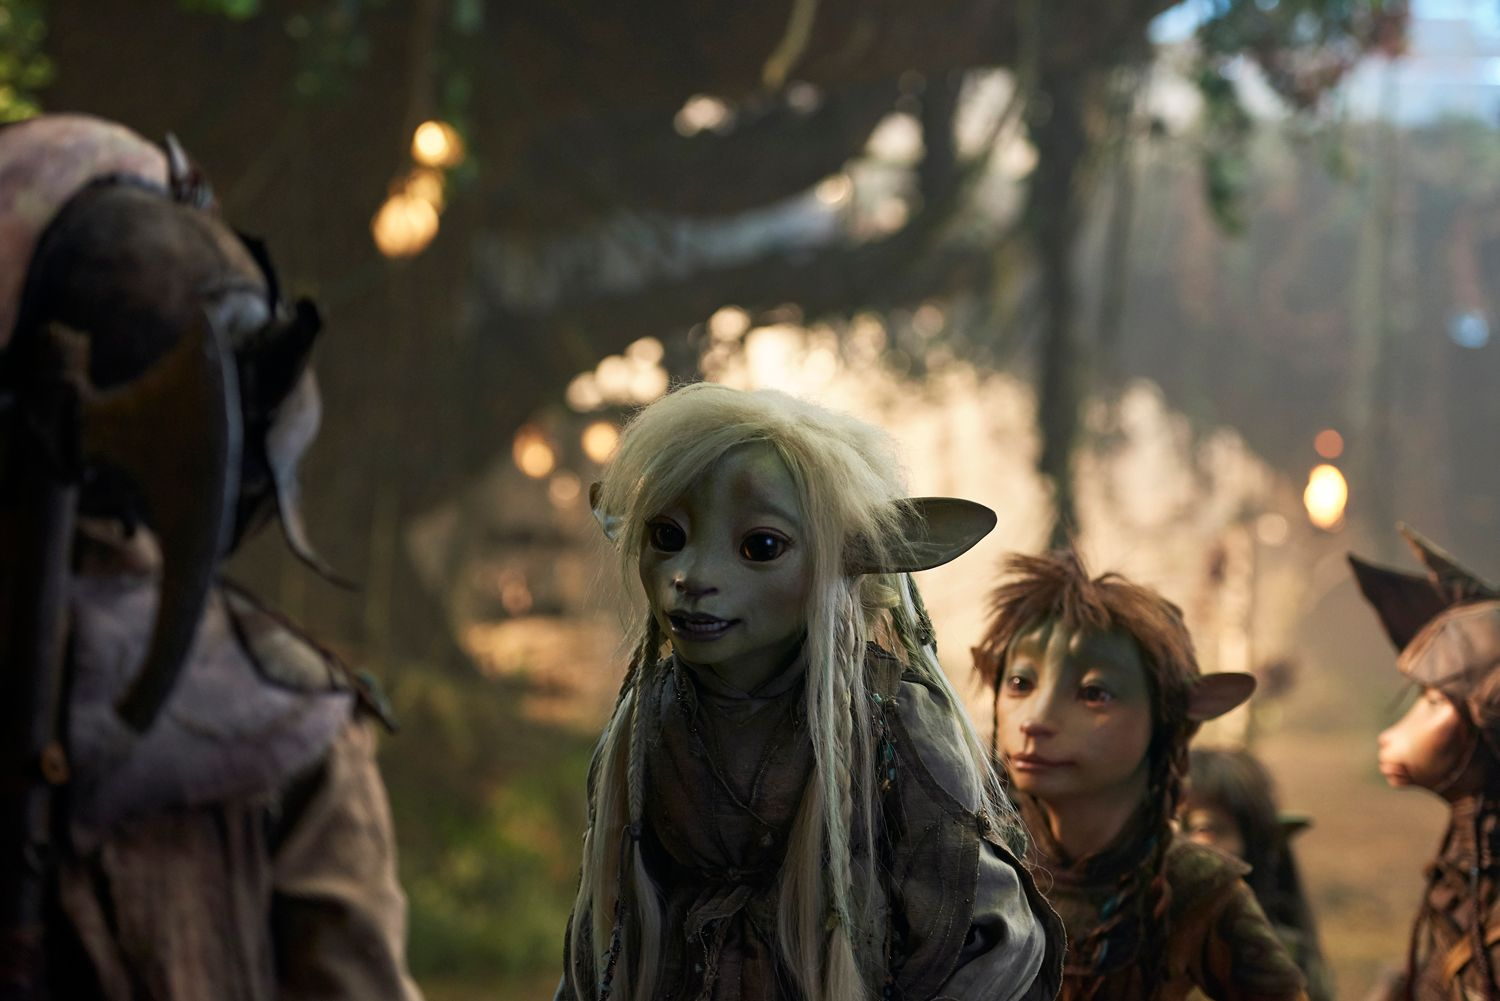 Netflix's 'Dark Crystal' Prequel Series Gets Premiere Date & New Photos